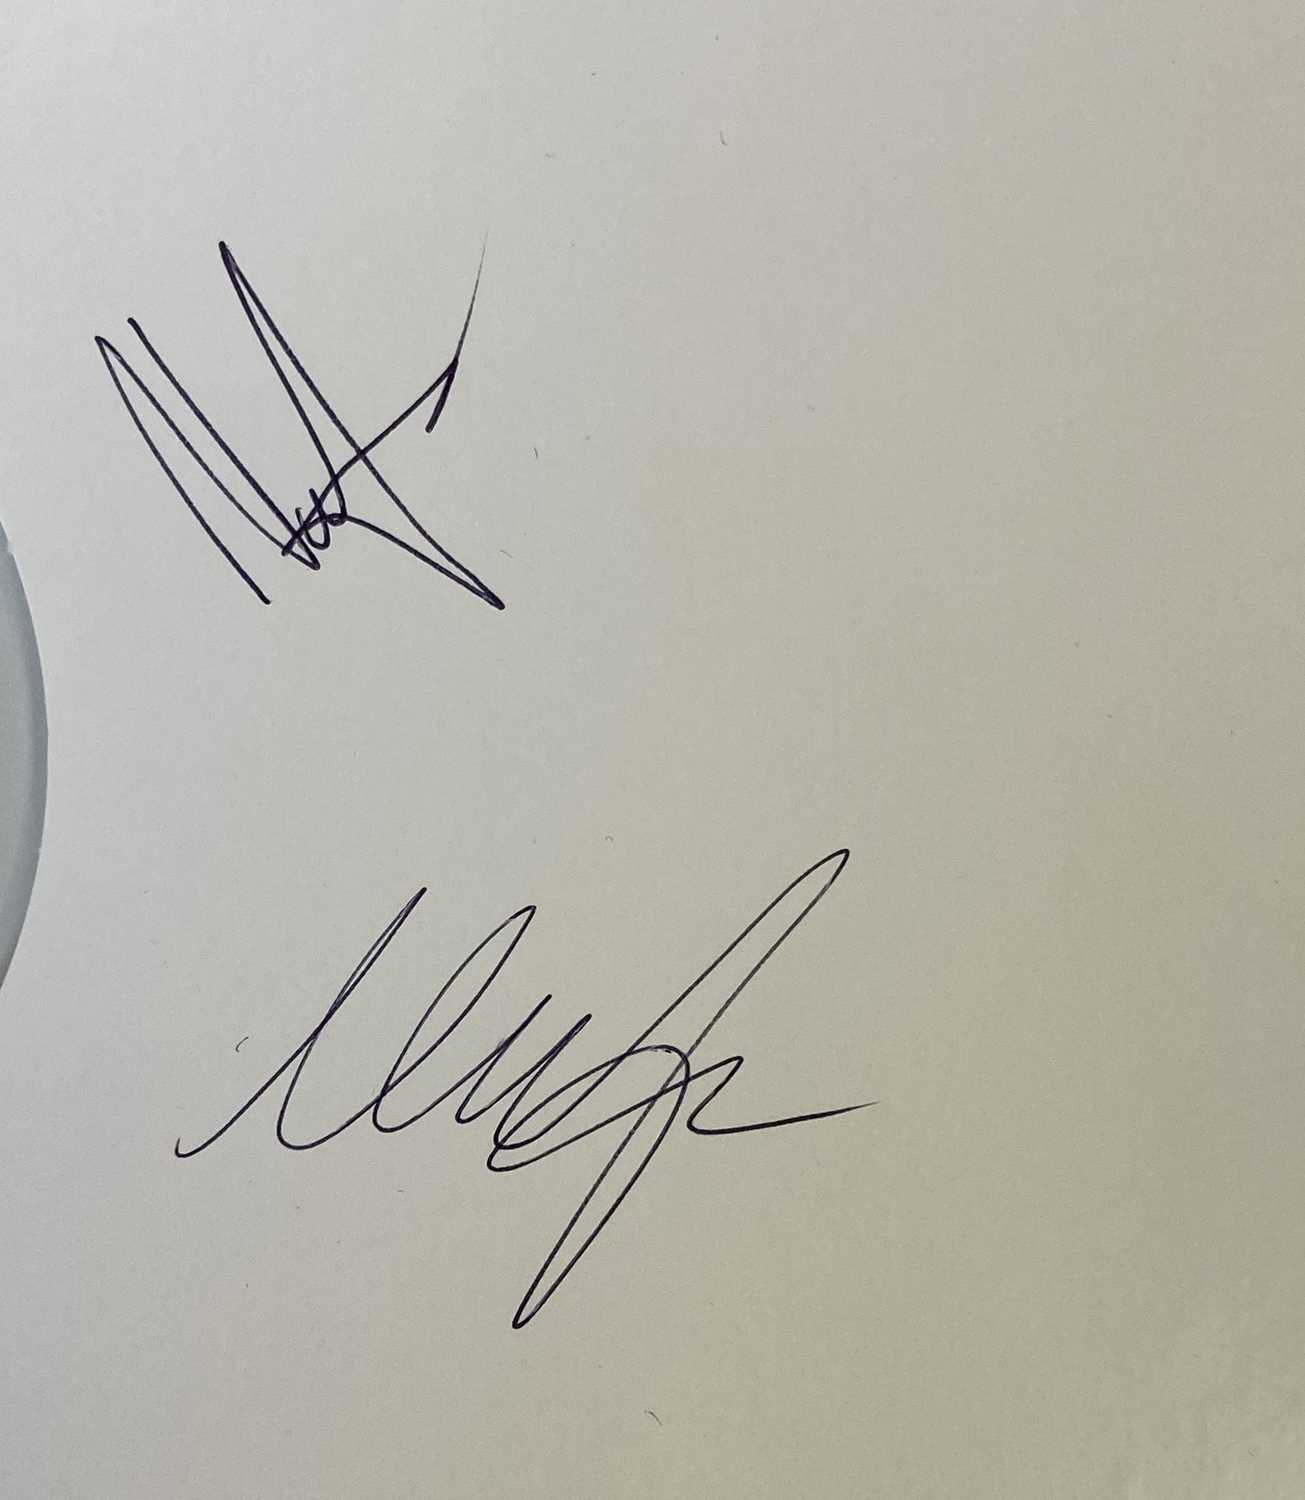 CRANBERRIES - STARS WHITE LABEL TEST PRESSING SIGNED BY THE BAND AND EILEEN O'RIORDAN. - Image 3 of 4